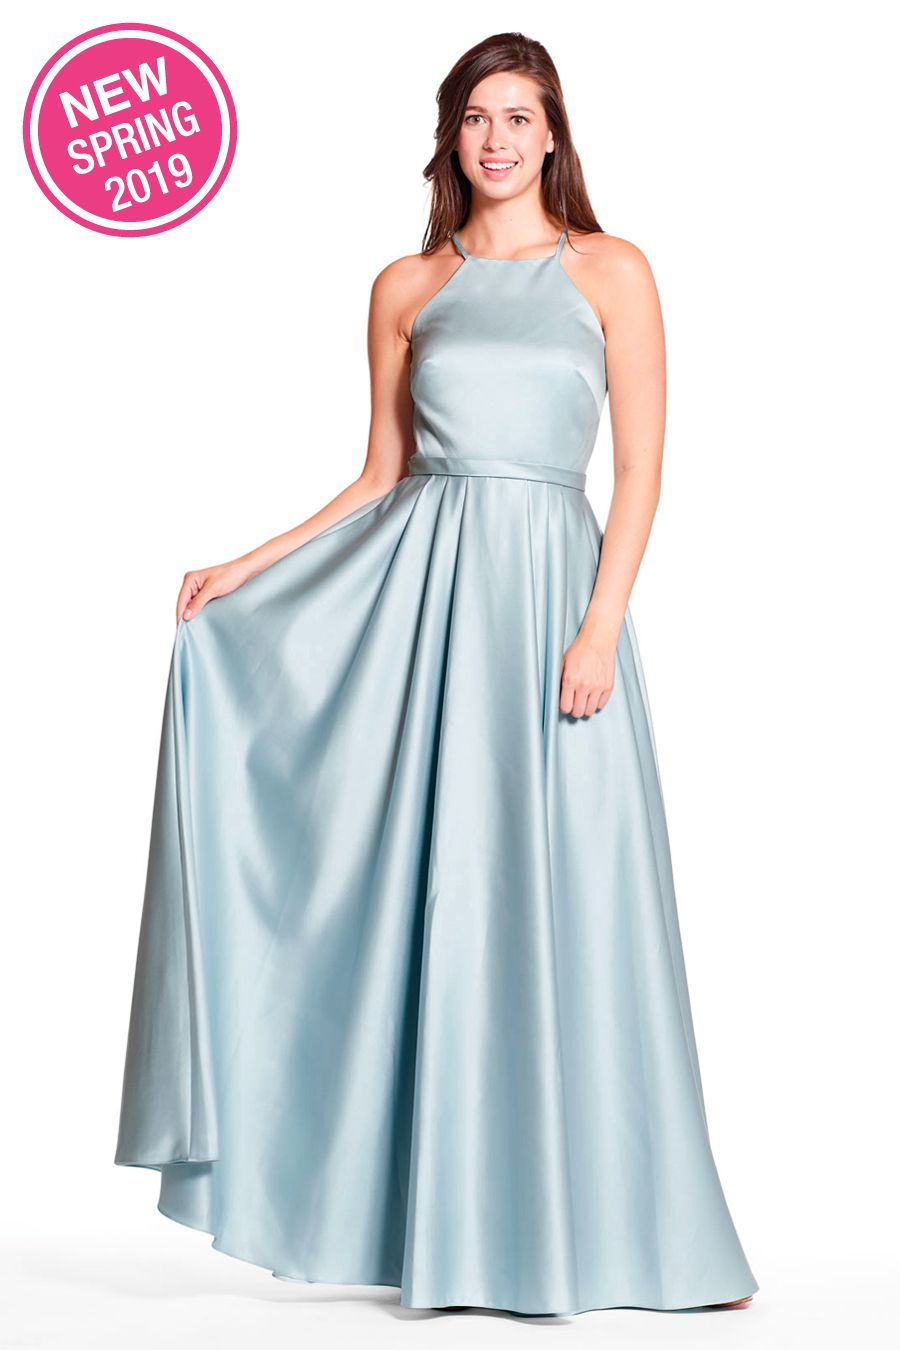 f6c96e720261a STYLE: 1941 (available short 1941-s) | Bridesmaid Dresses, Evening Gowns &  Flower Girl Dresses | Bari Jay